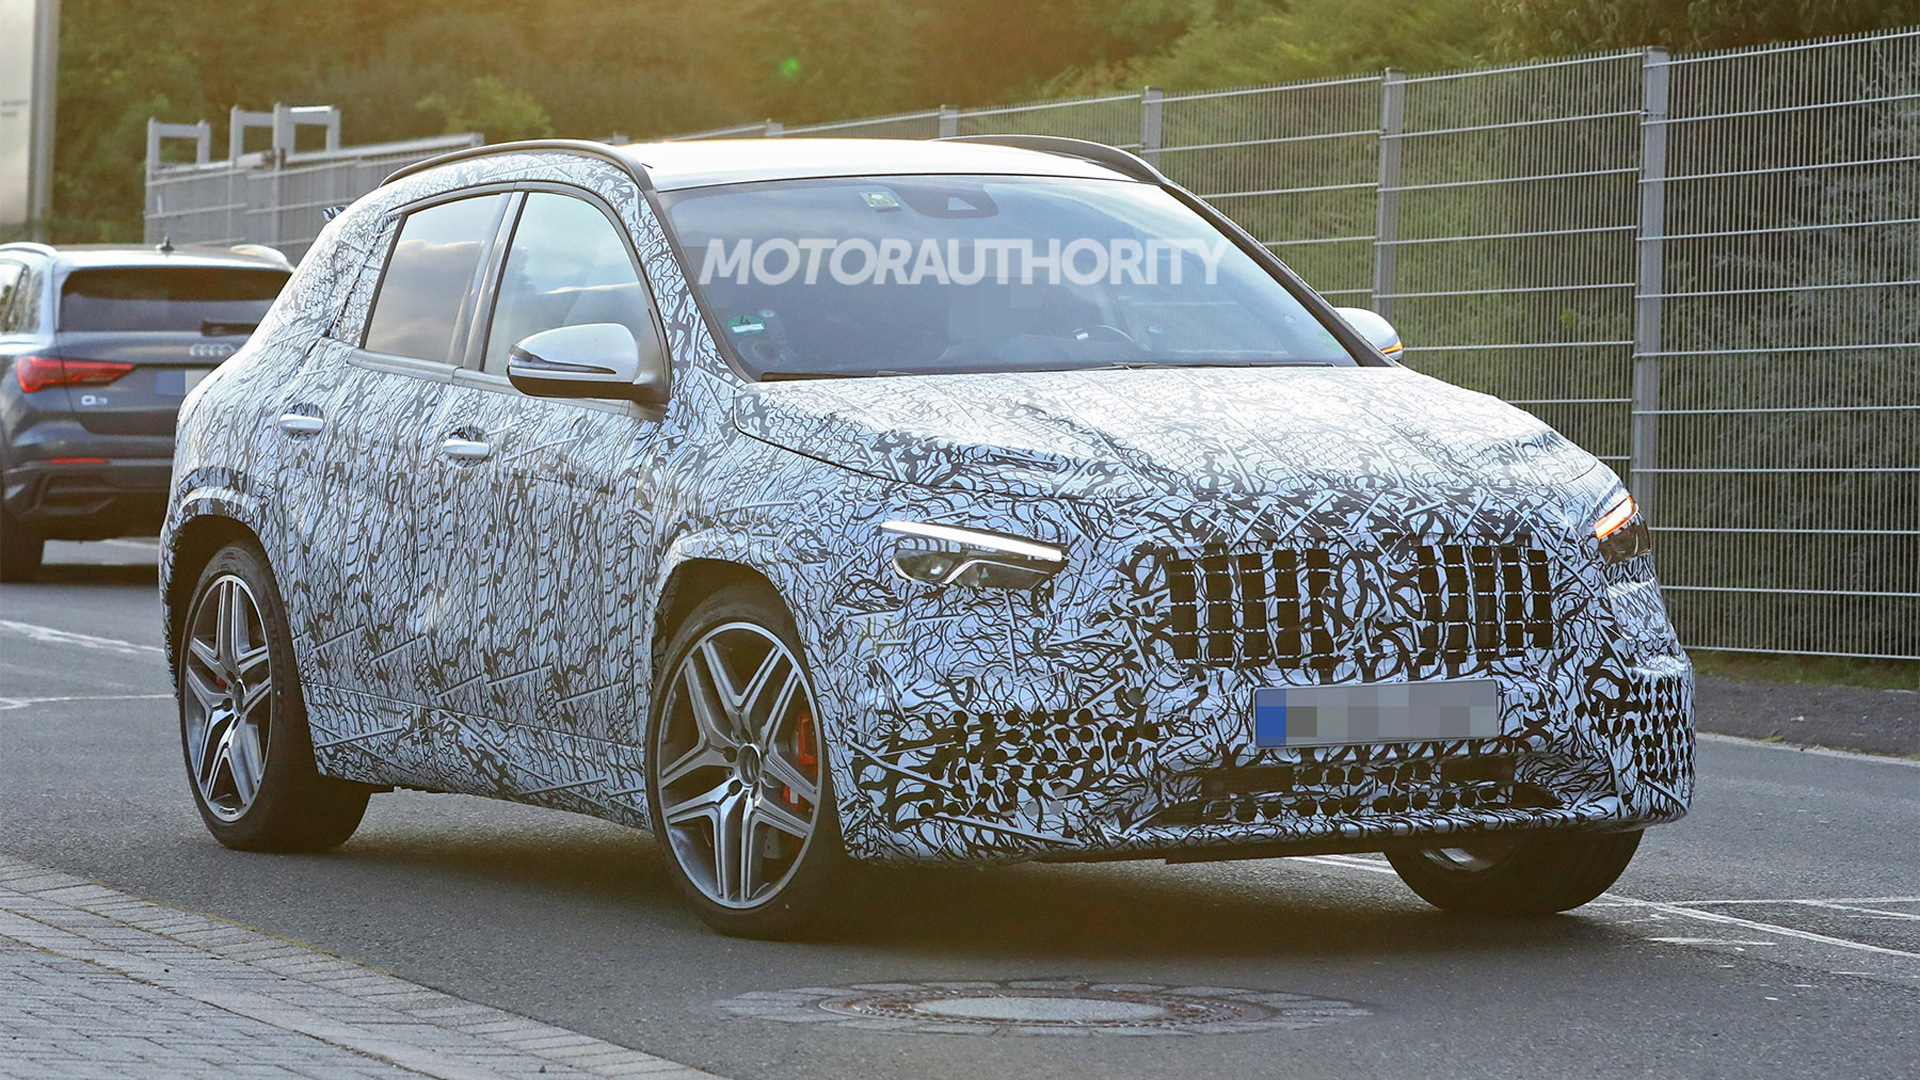 2021 Mercedes-AMG GLA45 spy shots - Photo credit: S. Baldauf/SB-Medien